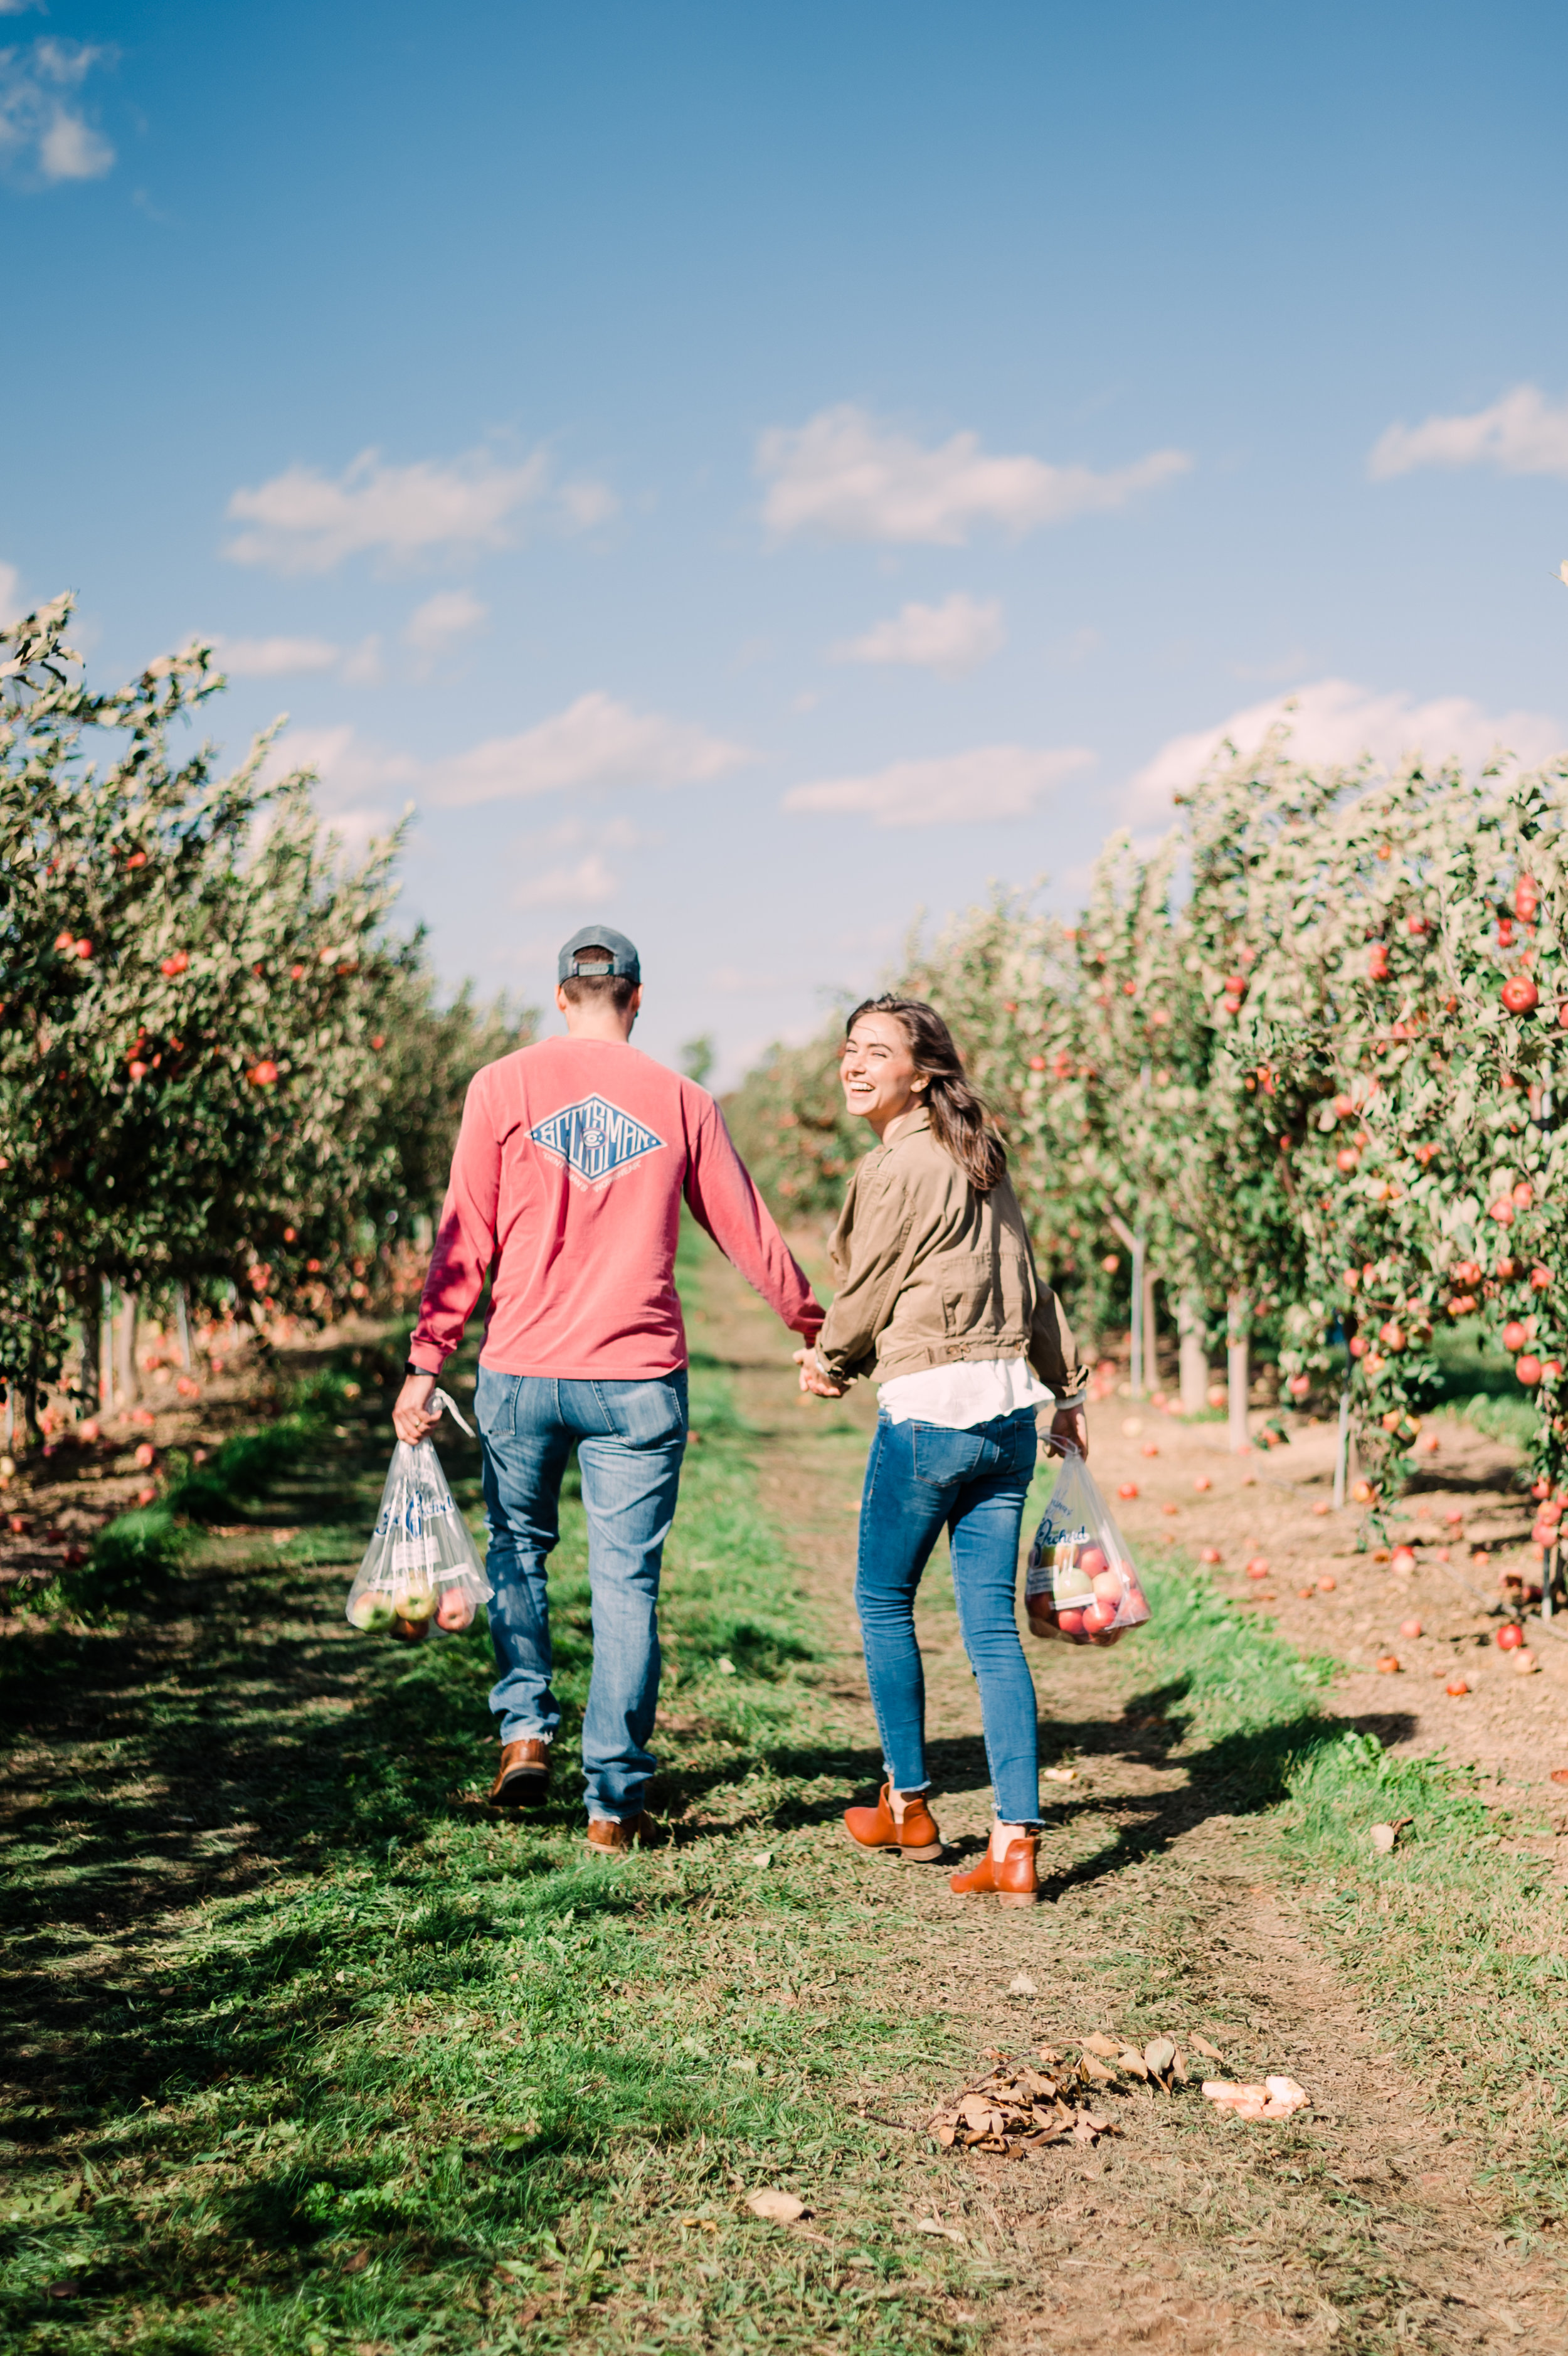 Fall October Huber's Orchard Indiana-8.JPG